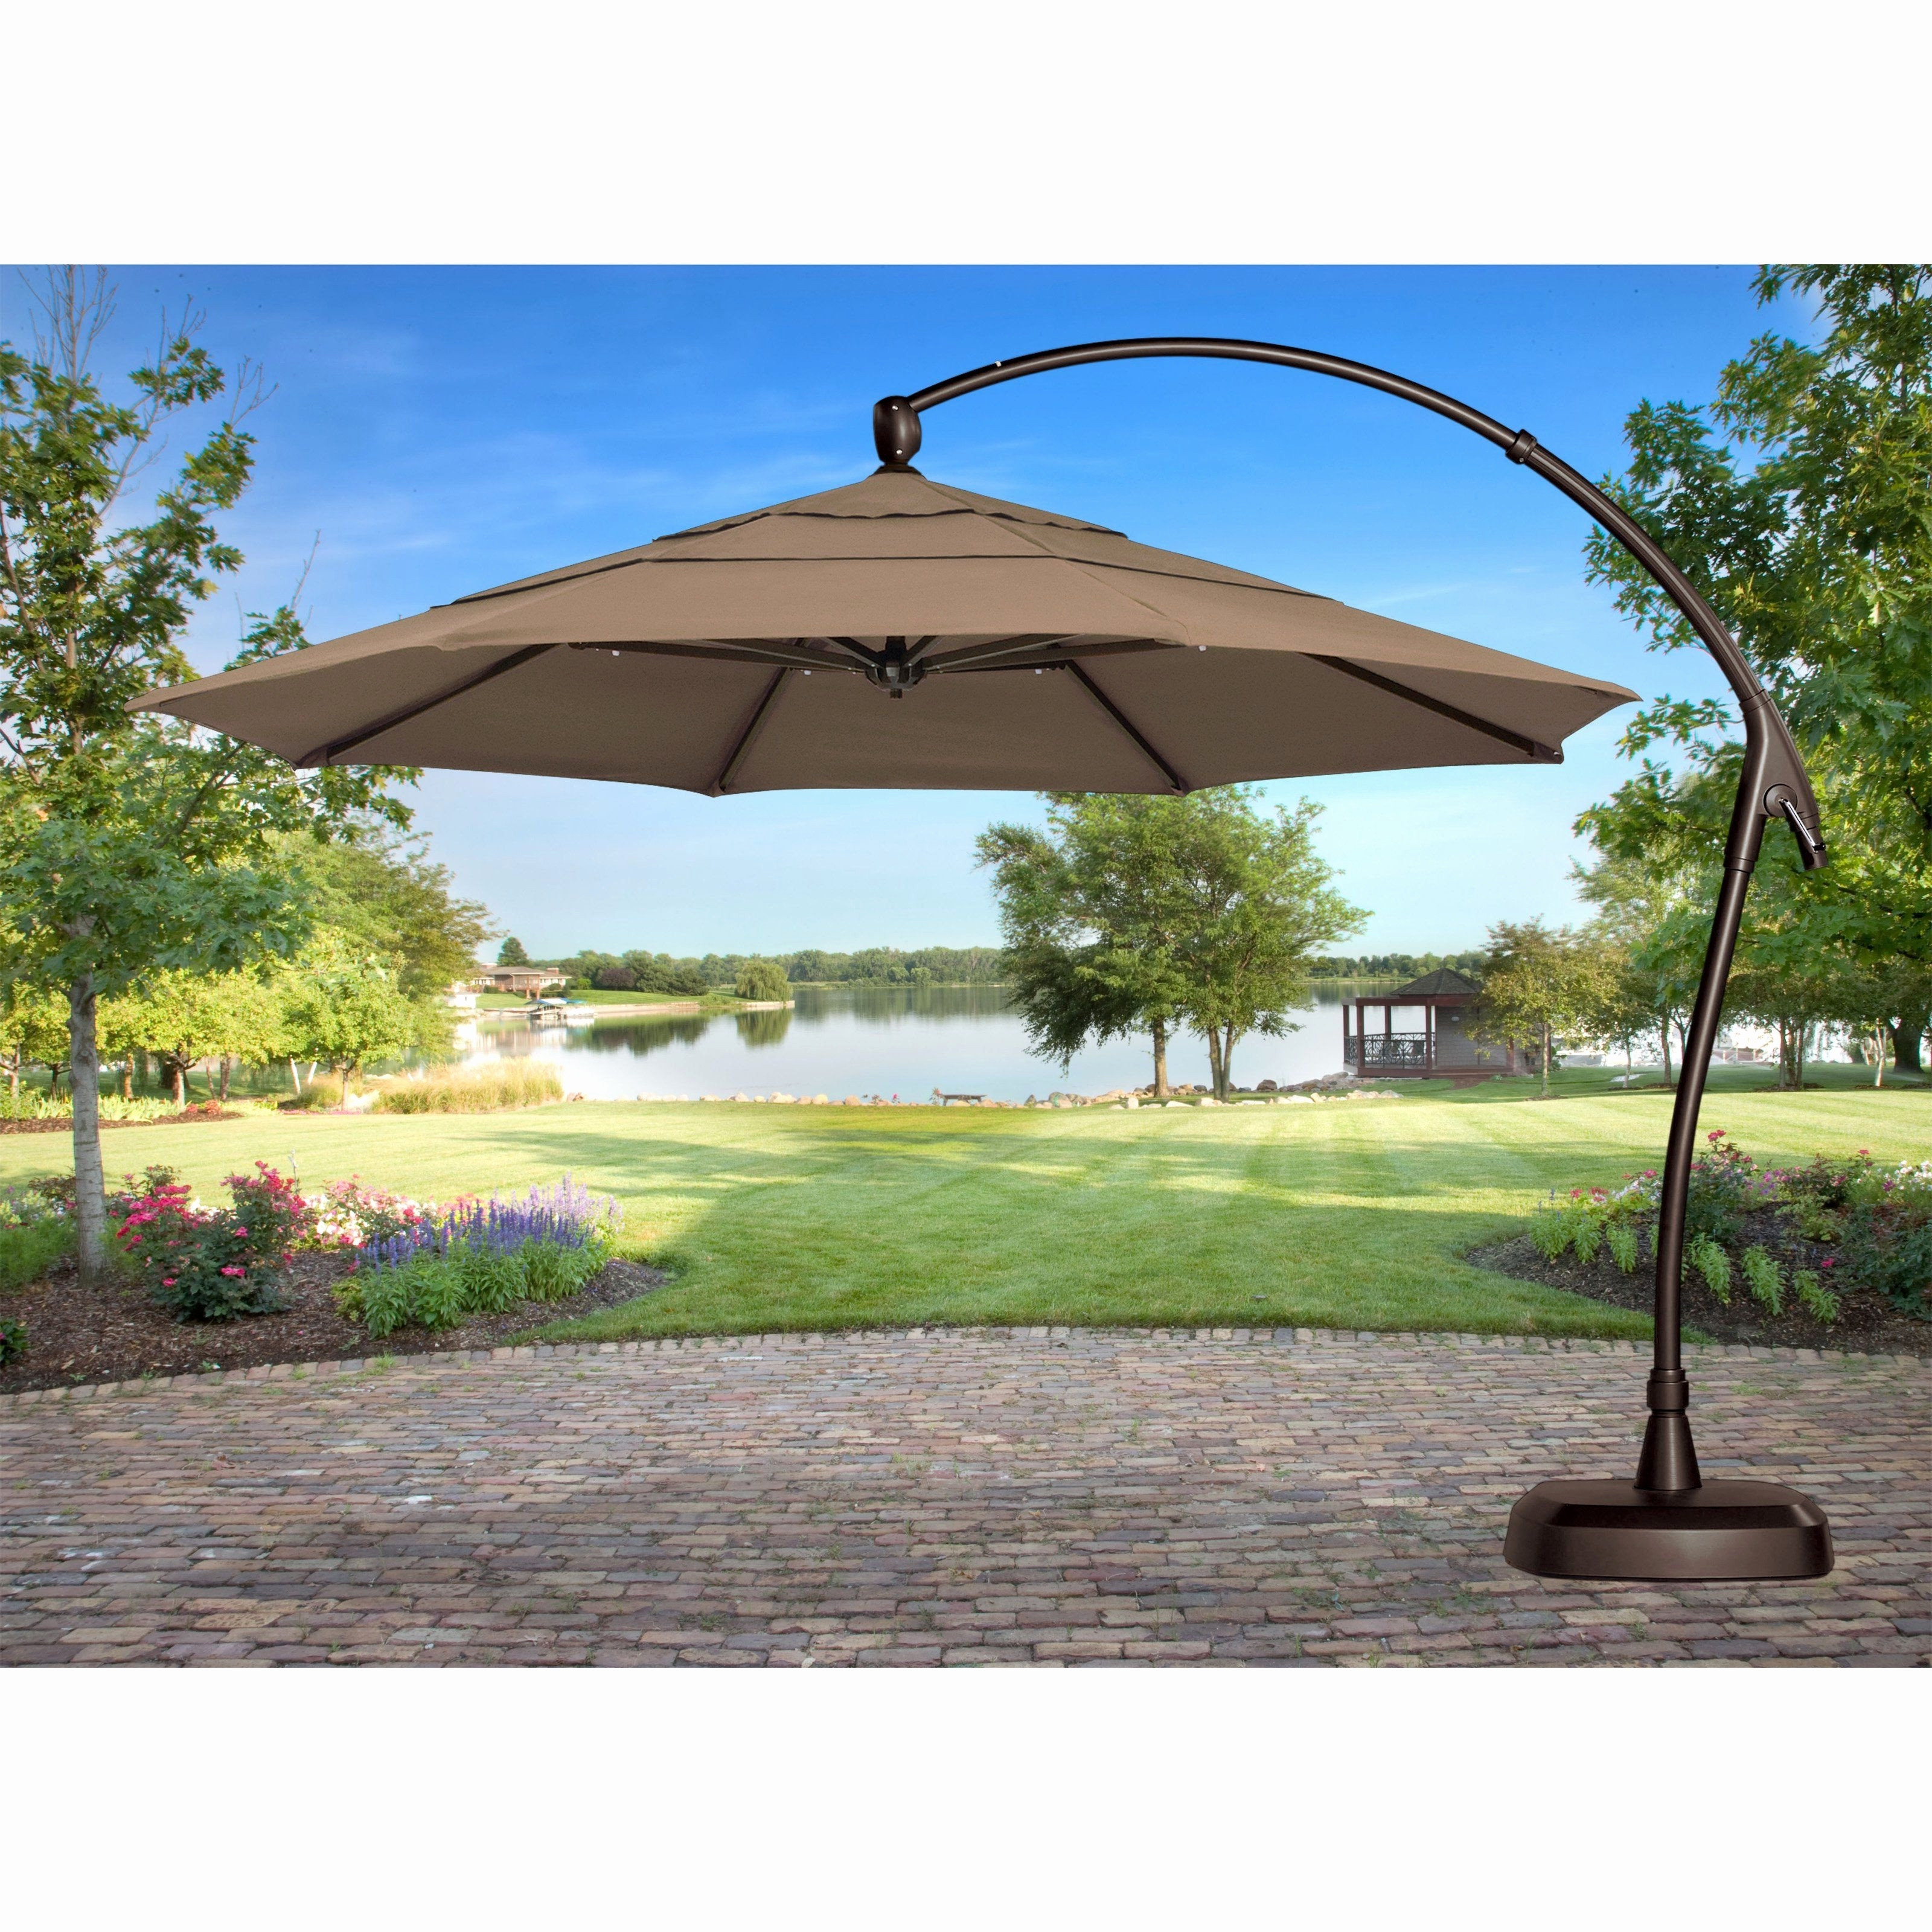 Famous Sunbrella Patio Umbrella With Lights In Rectangular Patio Umbrella Sunbrella Elegant Lights For Rectangular (View 5 of 20)